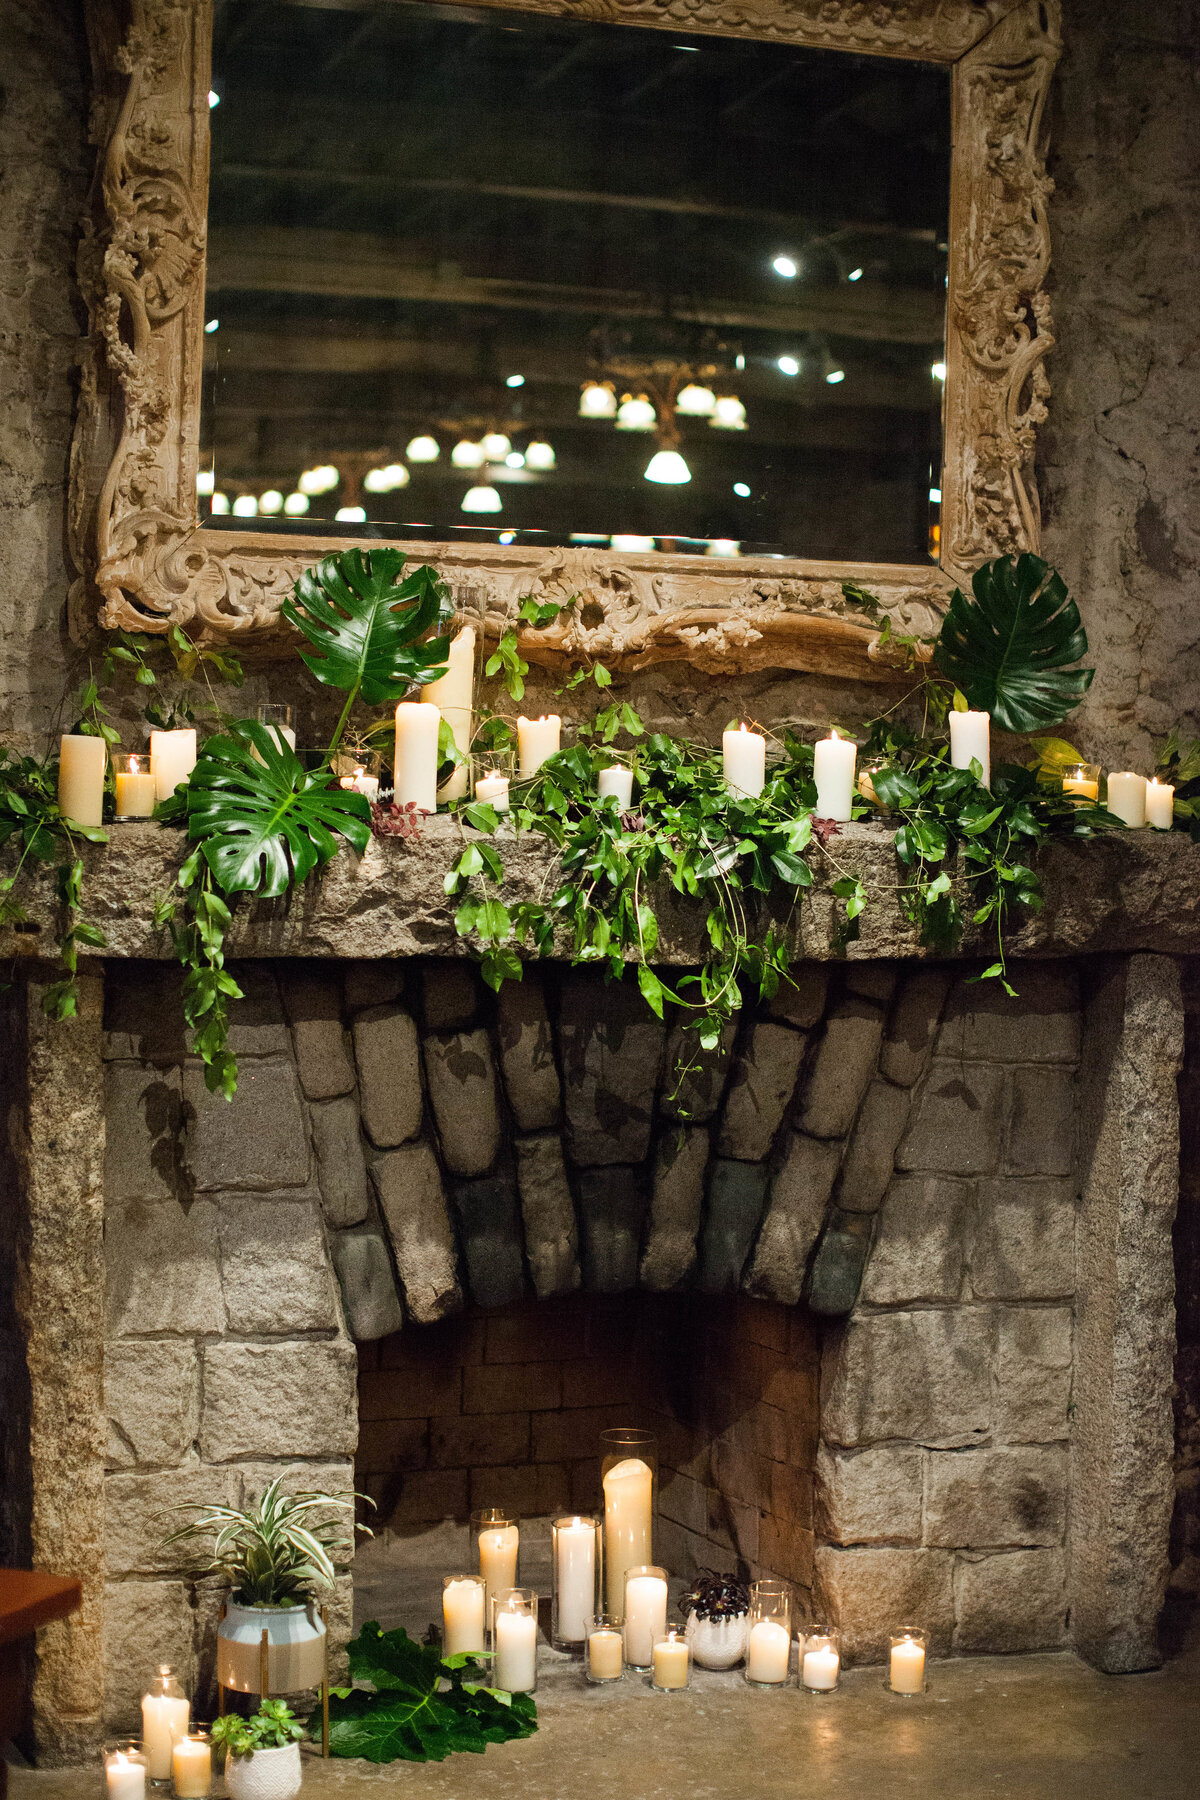 fire place with greenery and candles